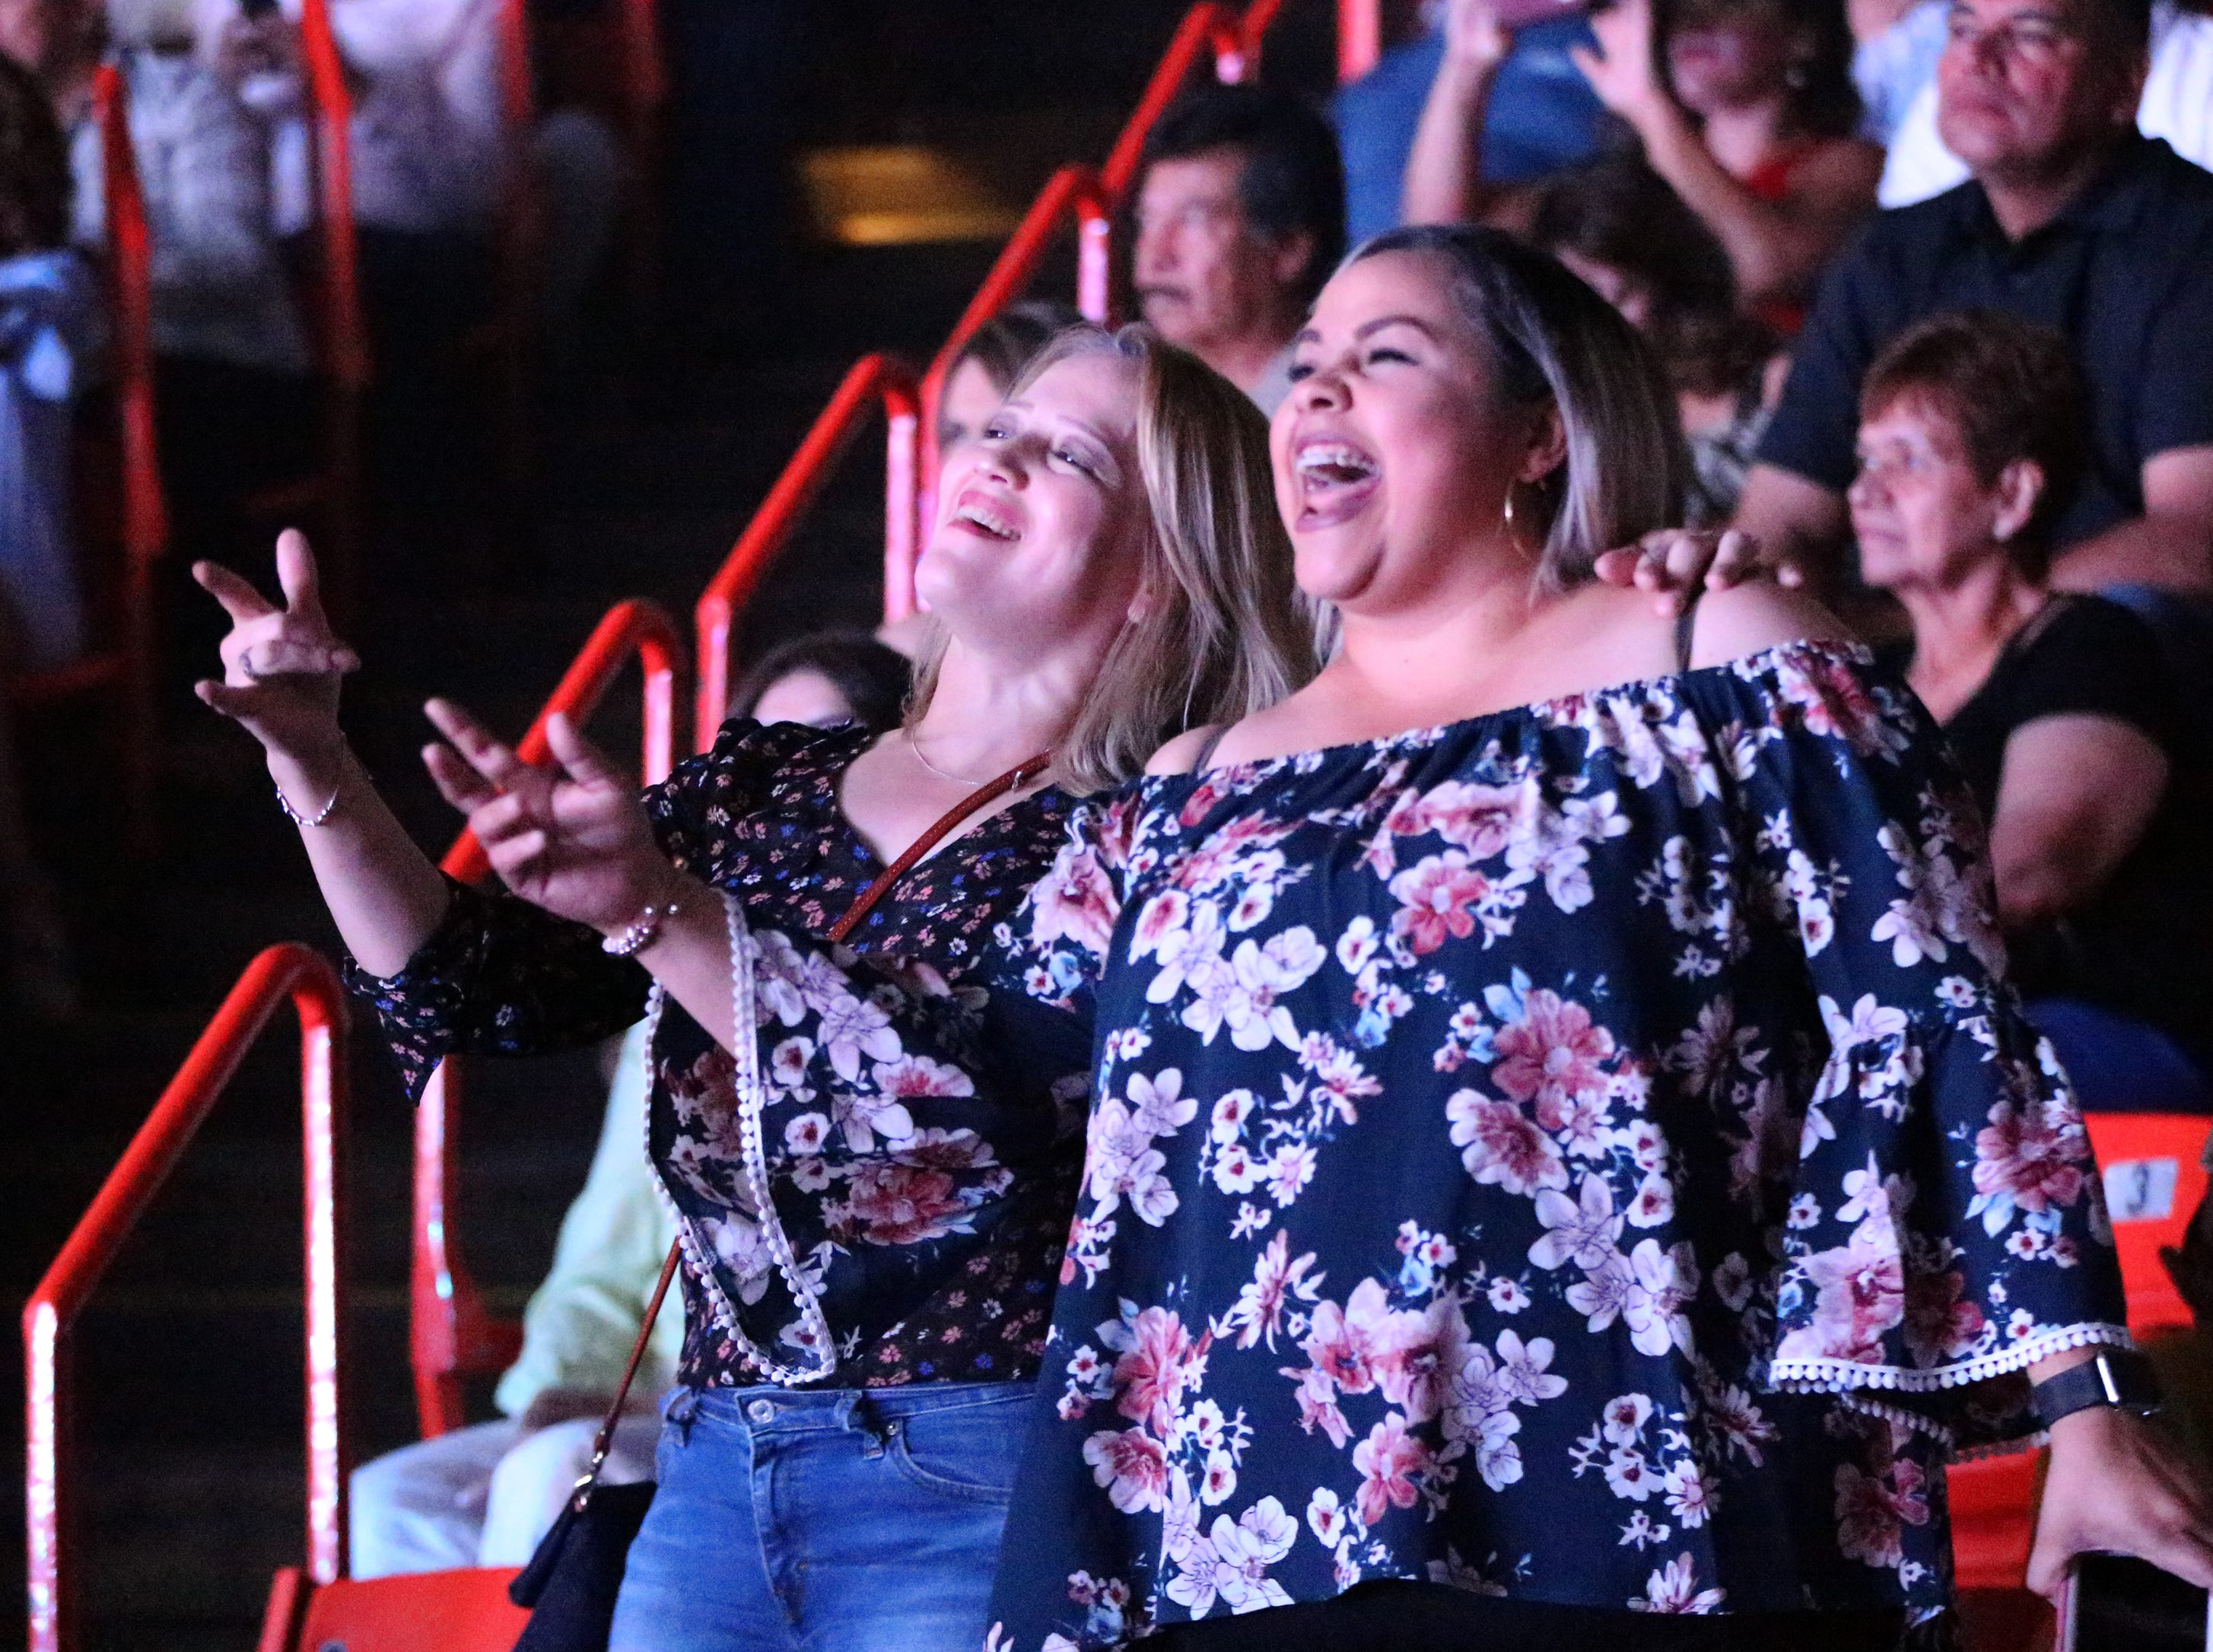 Dancing to the music Saturday night in the Don Haskins Center.